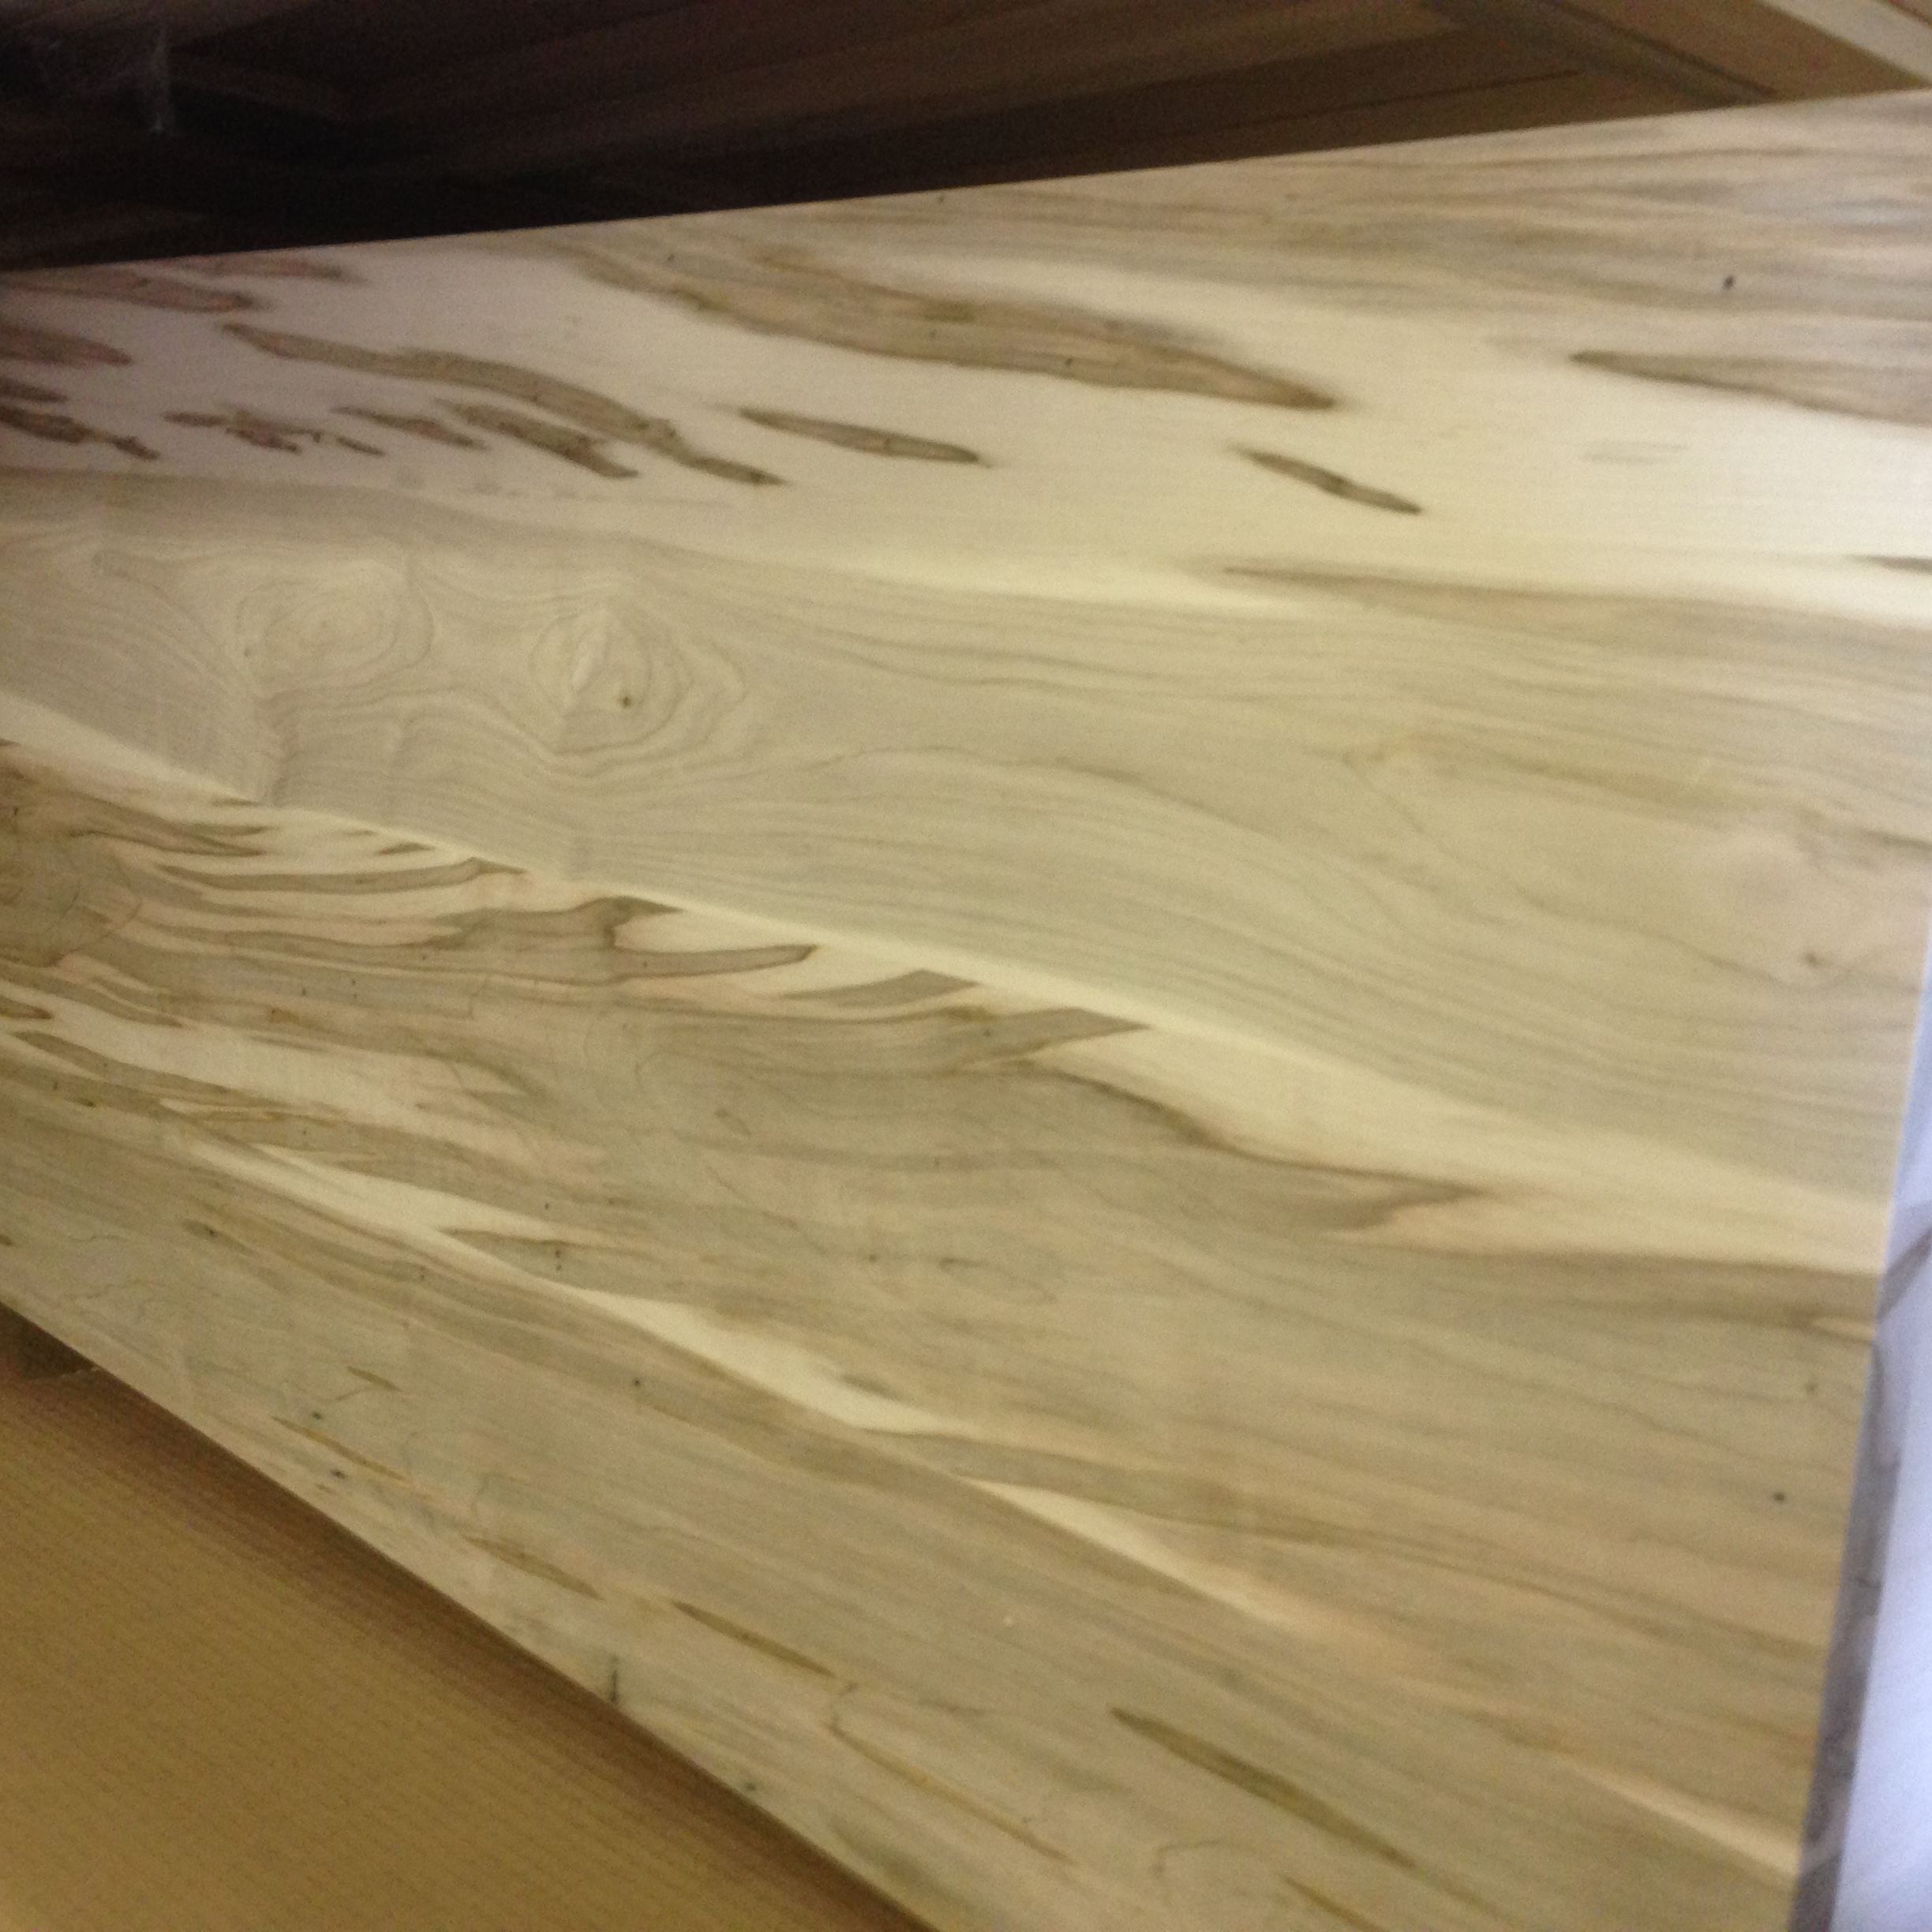 home patterns a wood countertop diy countertops for cheap wooden at ideas making installing your hub